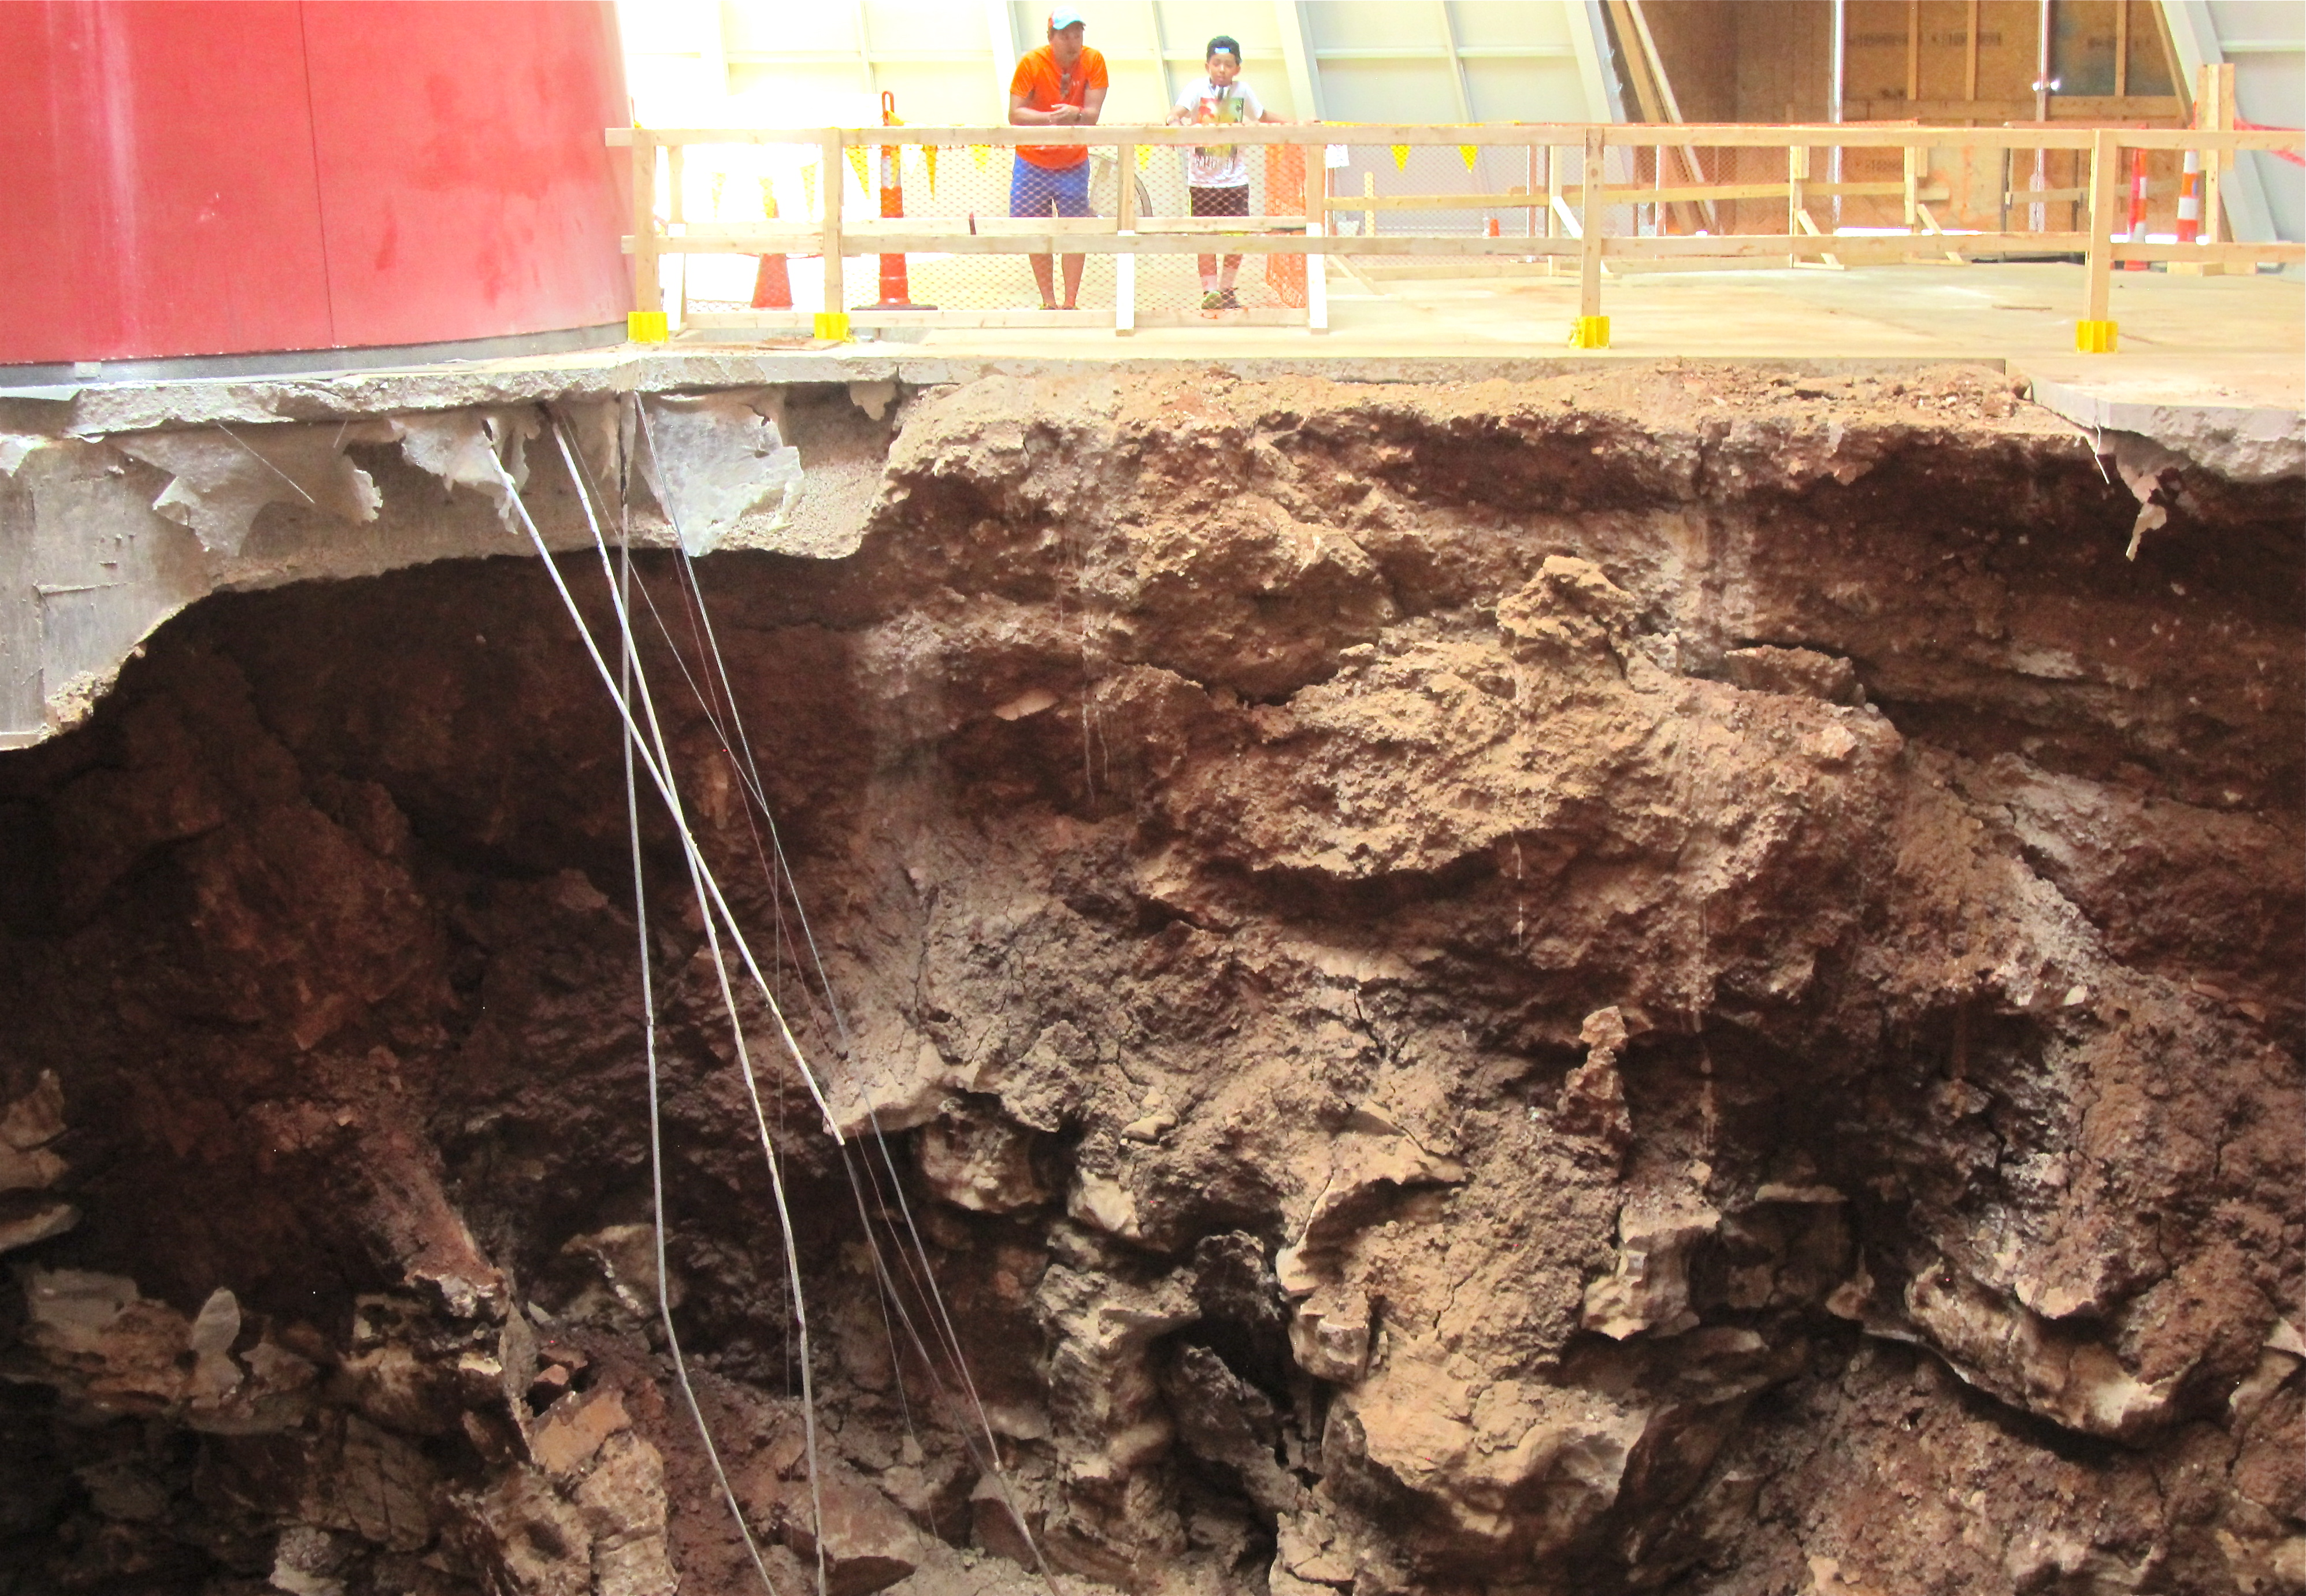 Corvette Museum's Crushed Cars, Closing Sinkhole As American Metaphor